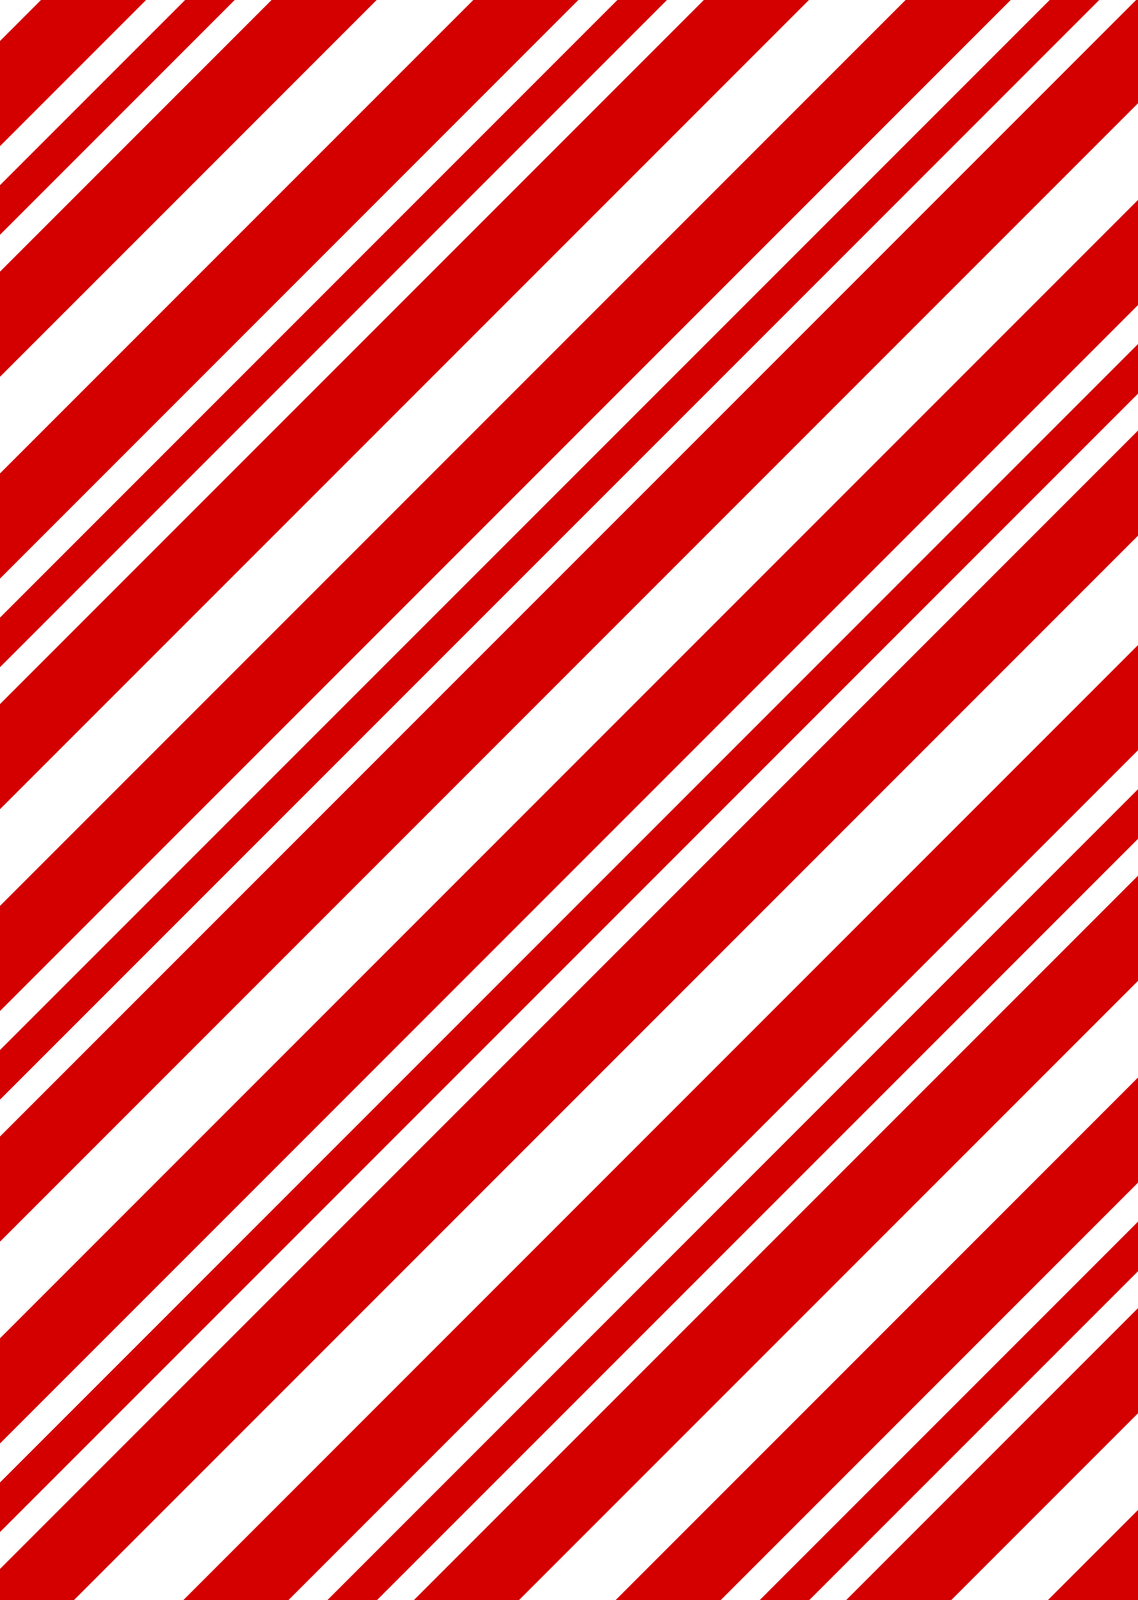 Candy Cane Pattern Template Candy Cane Templat